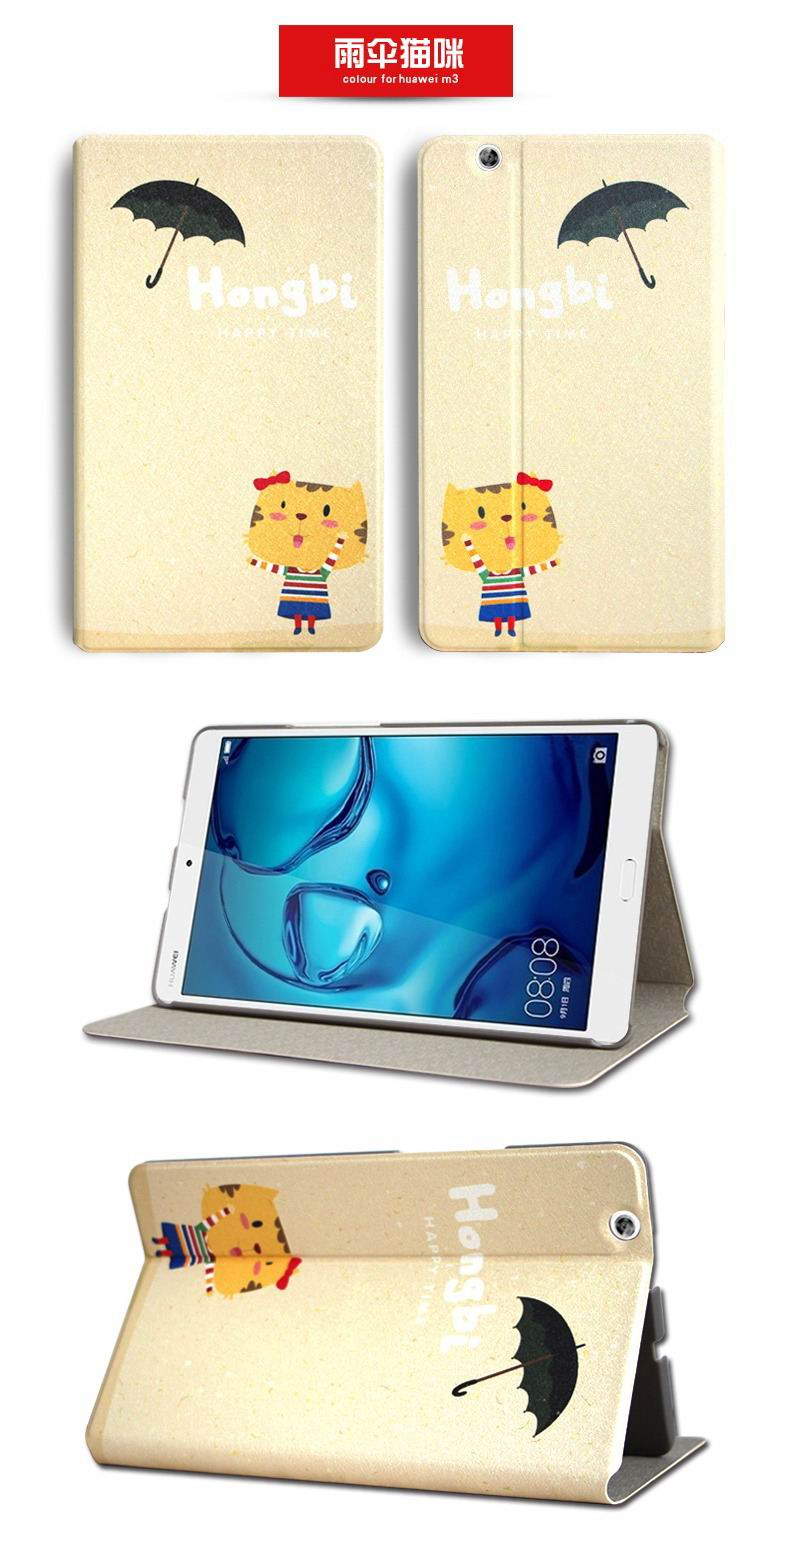 mediapad m3 cute case with cartoon heroes and different pictures